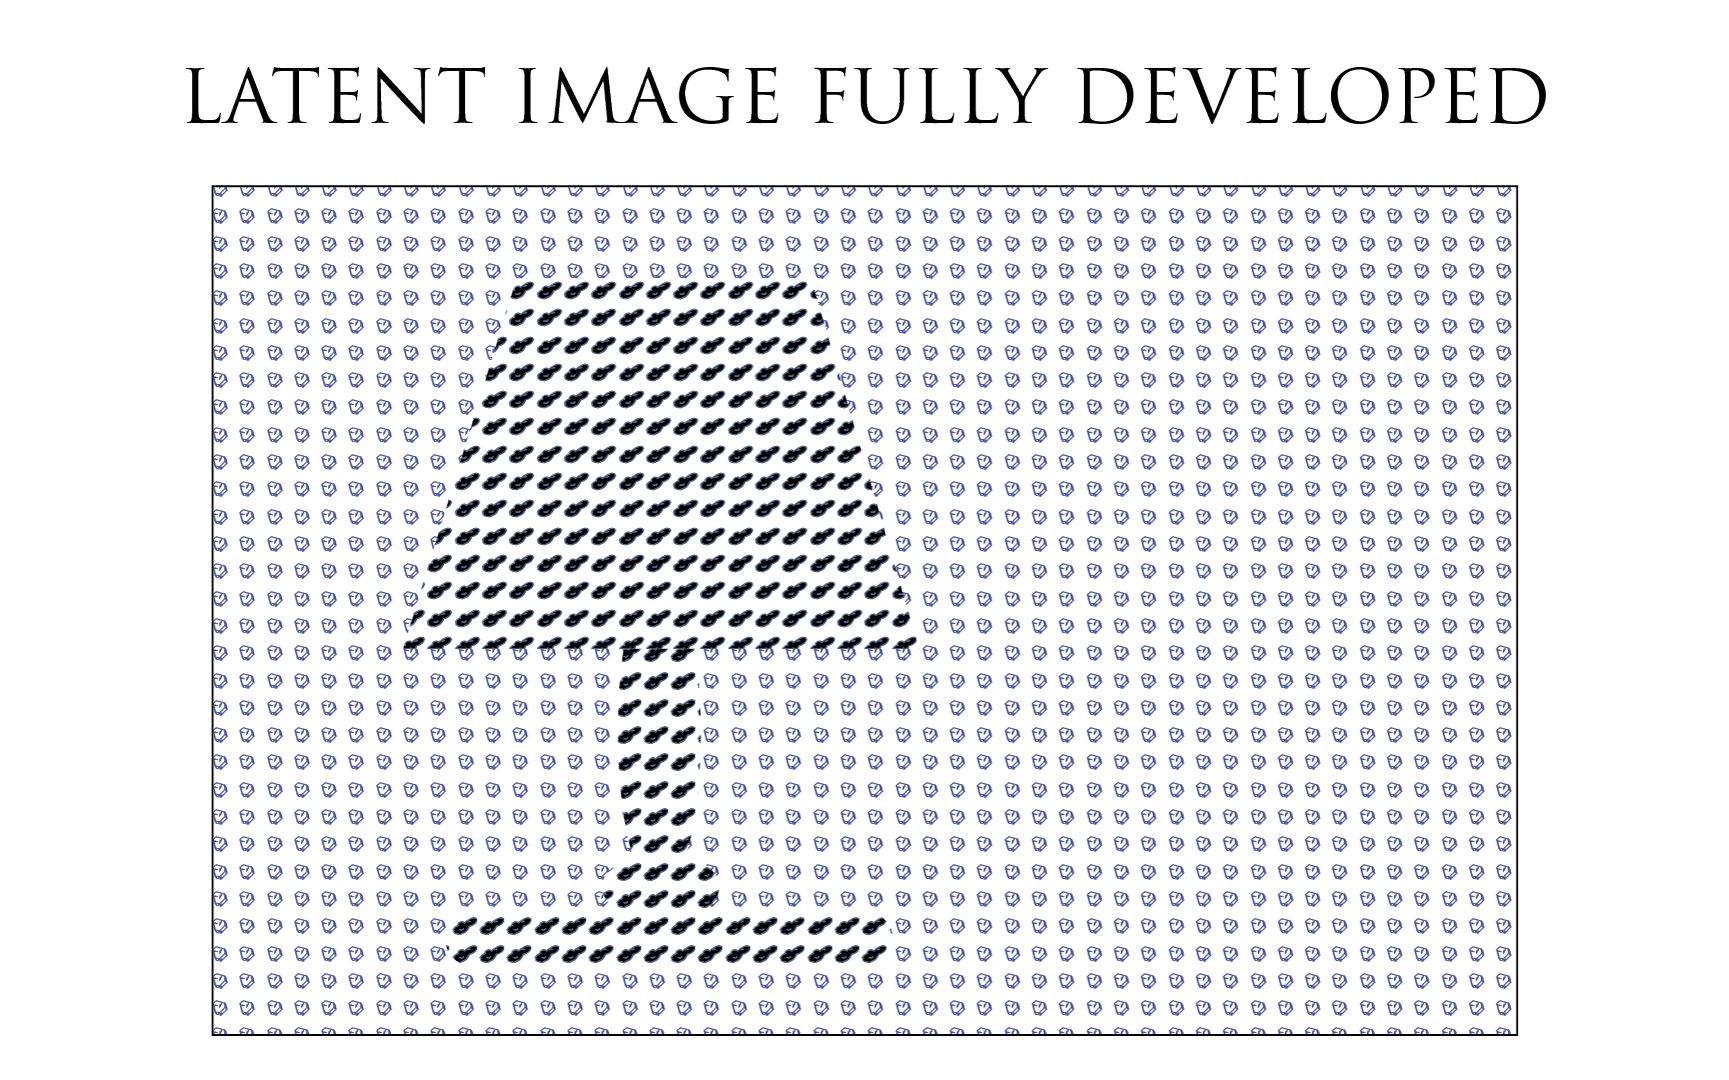 Illustration: latent image fully developed